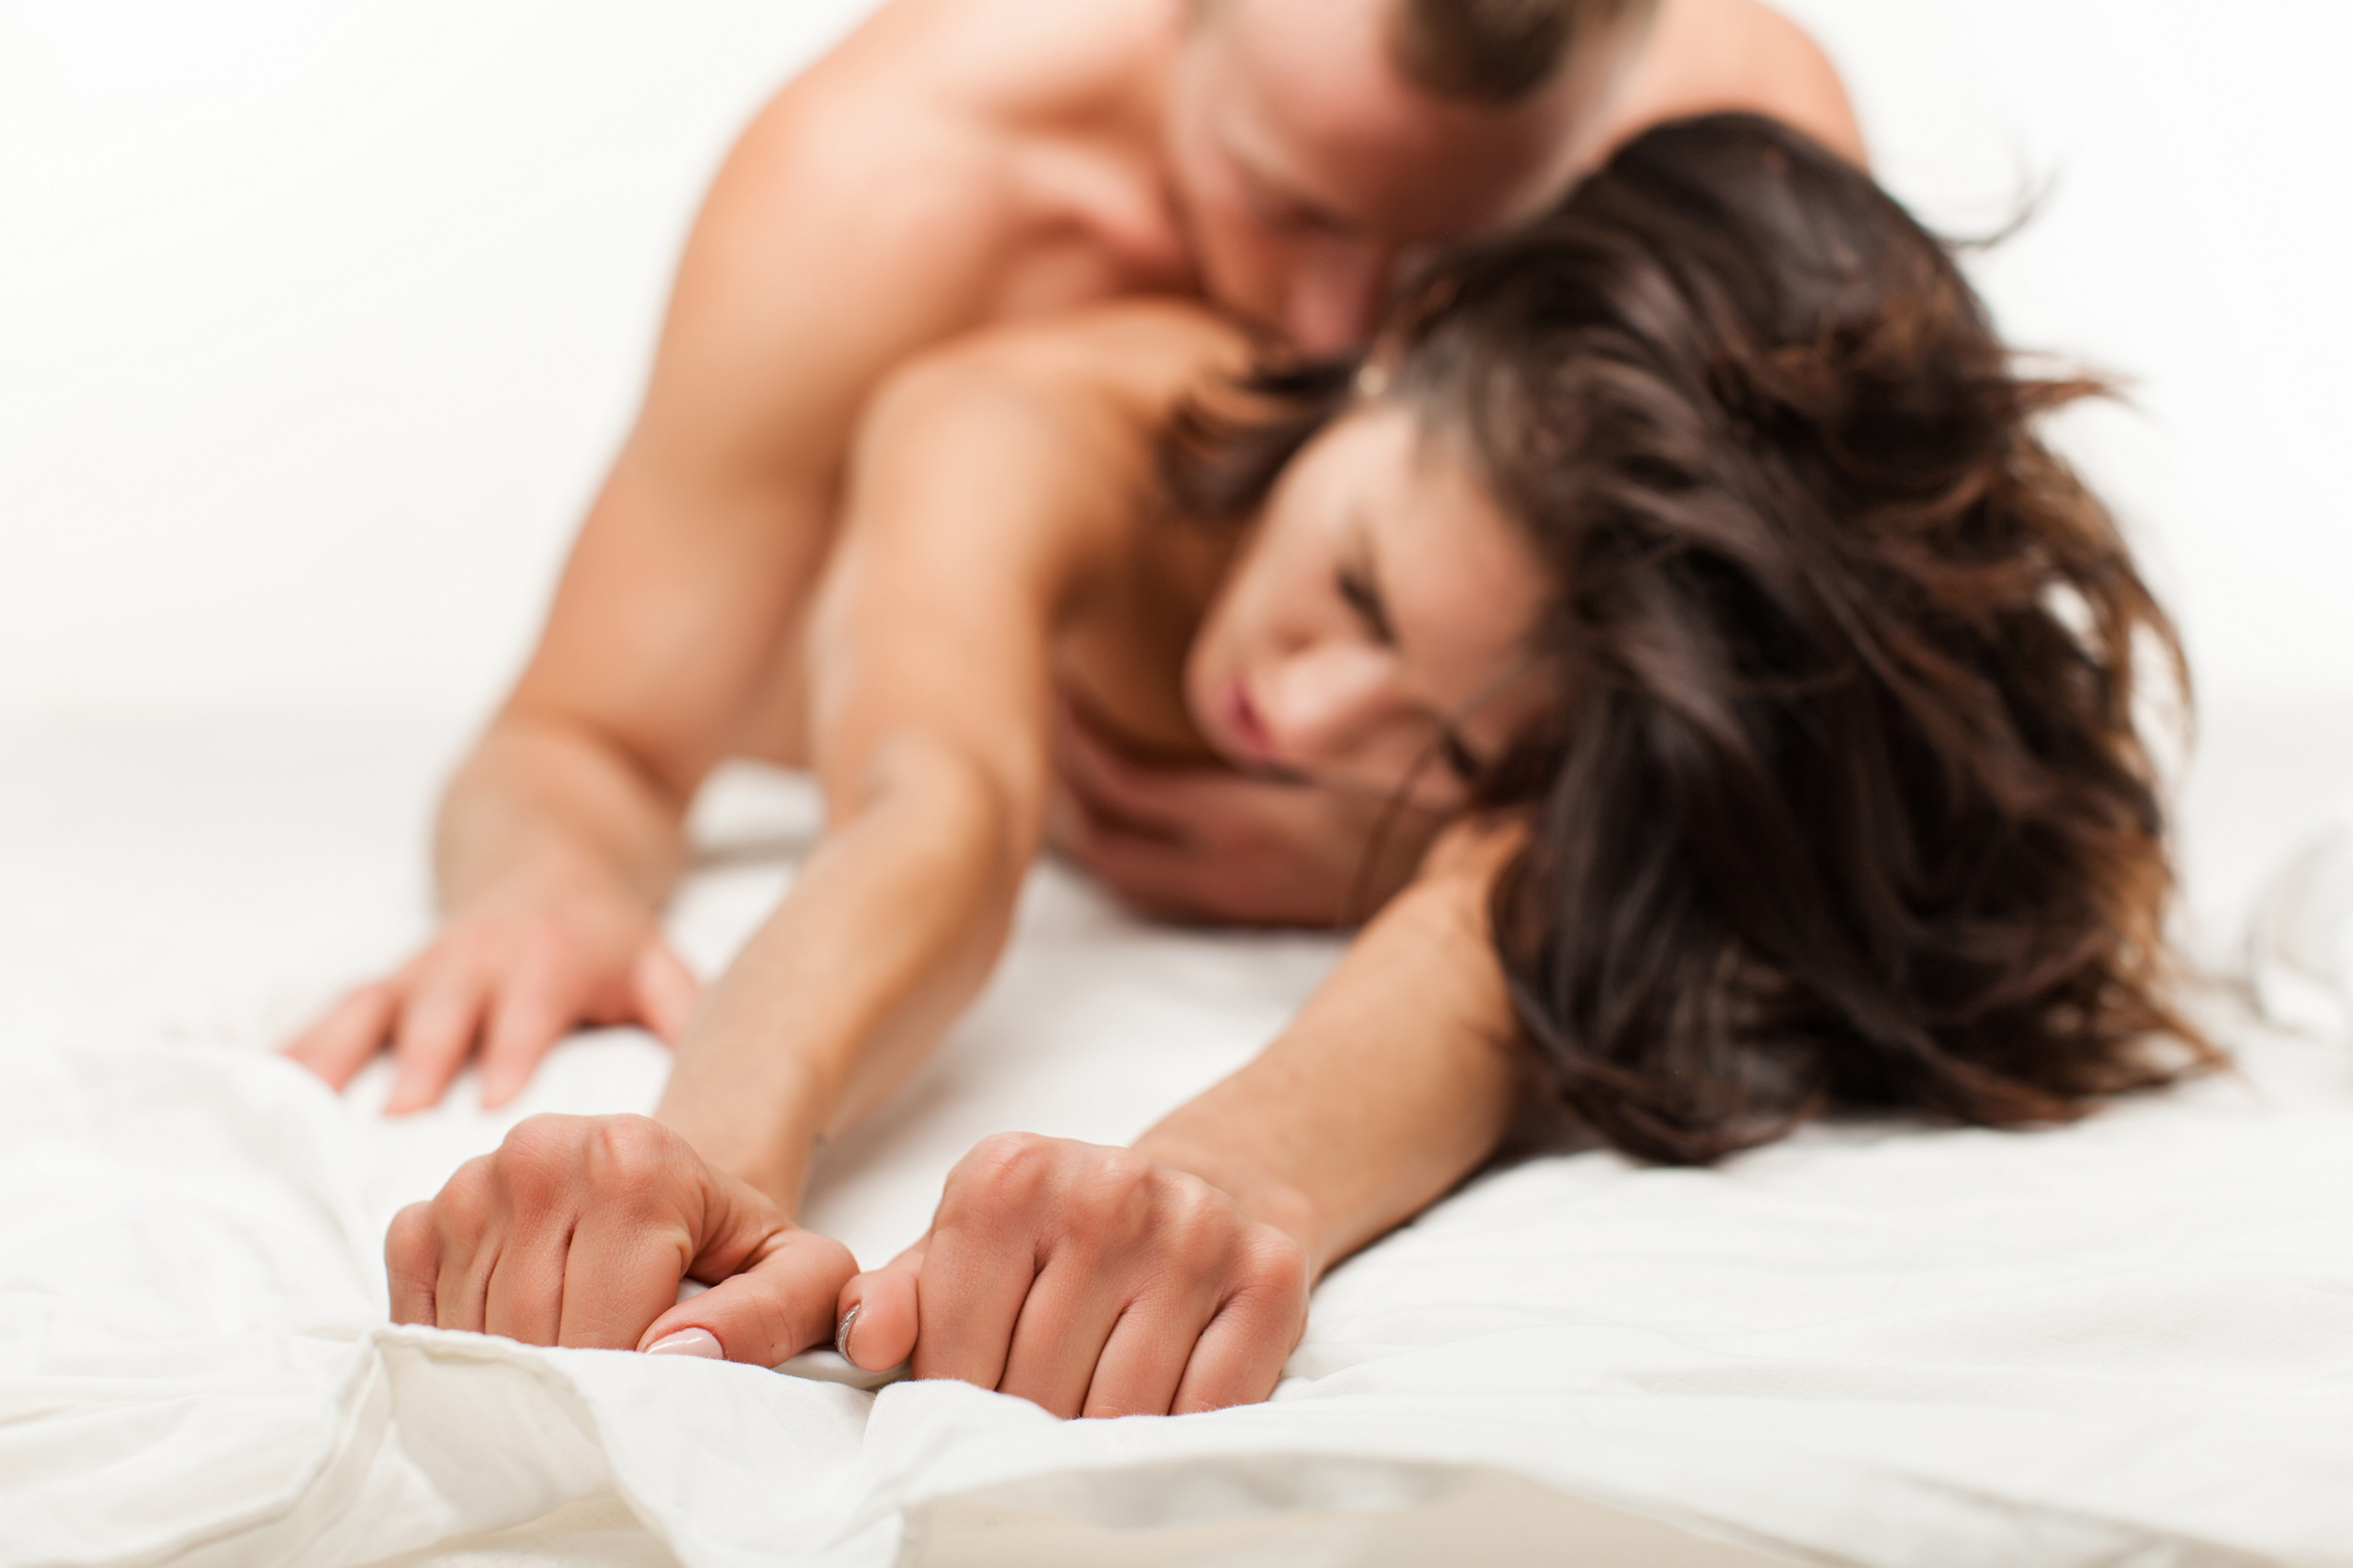 Top 6 Tips To Having A Better Sex Experience